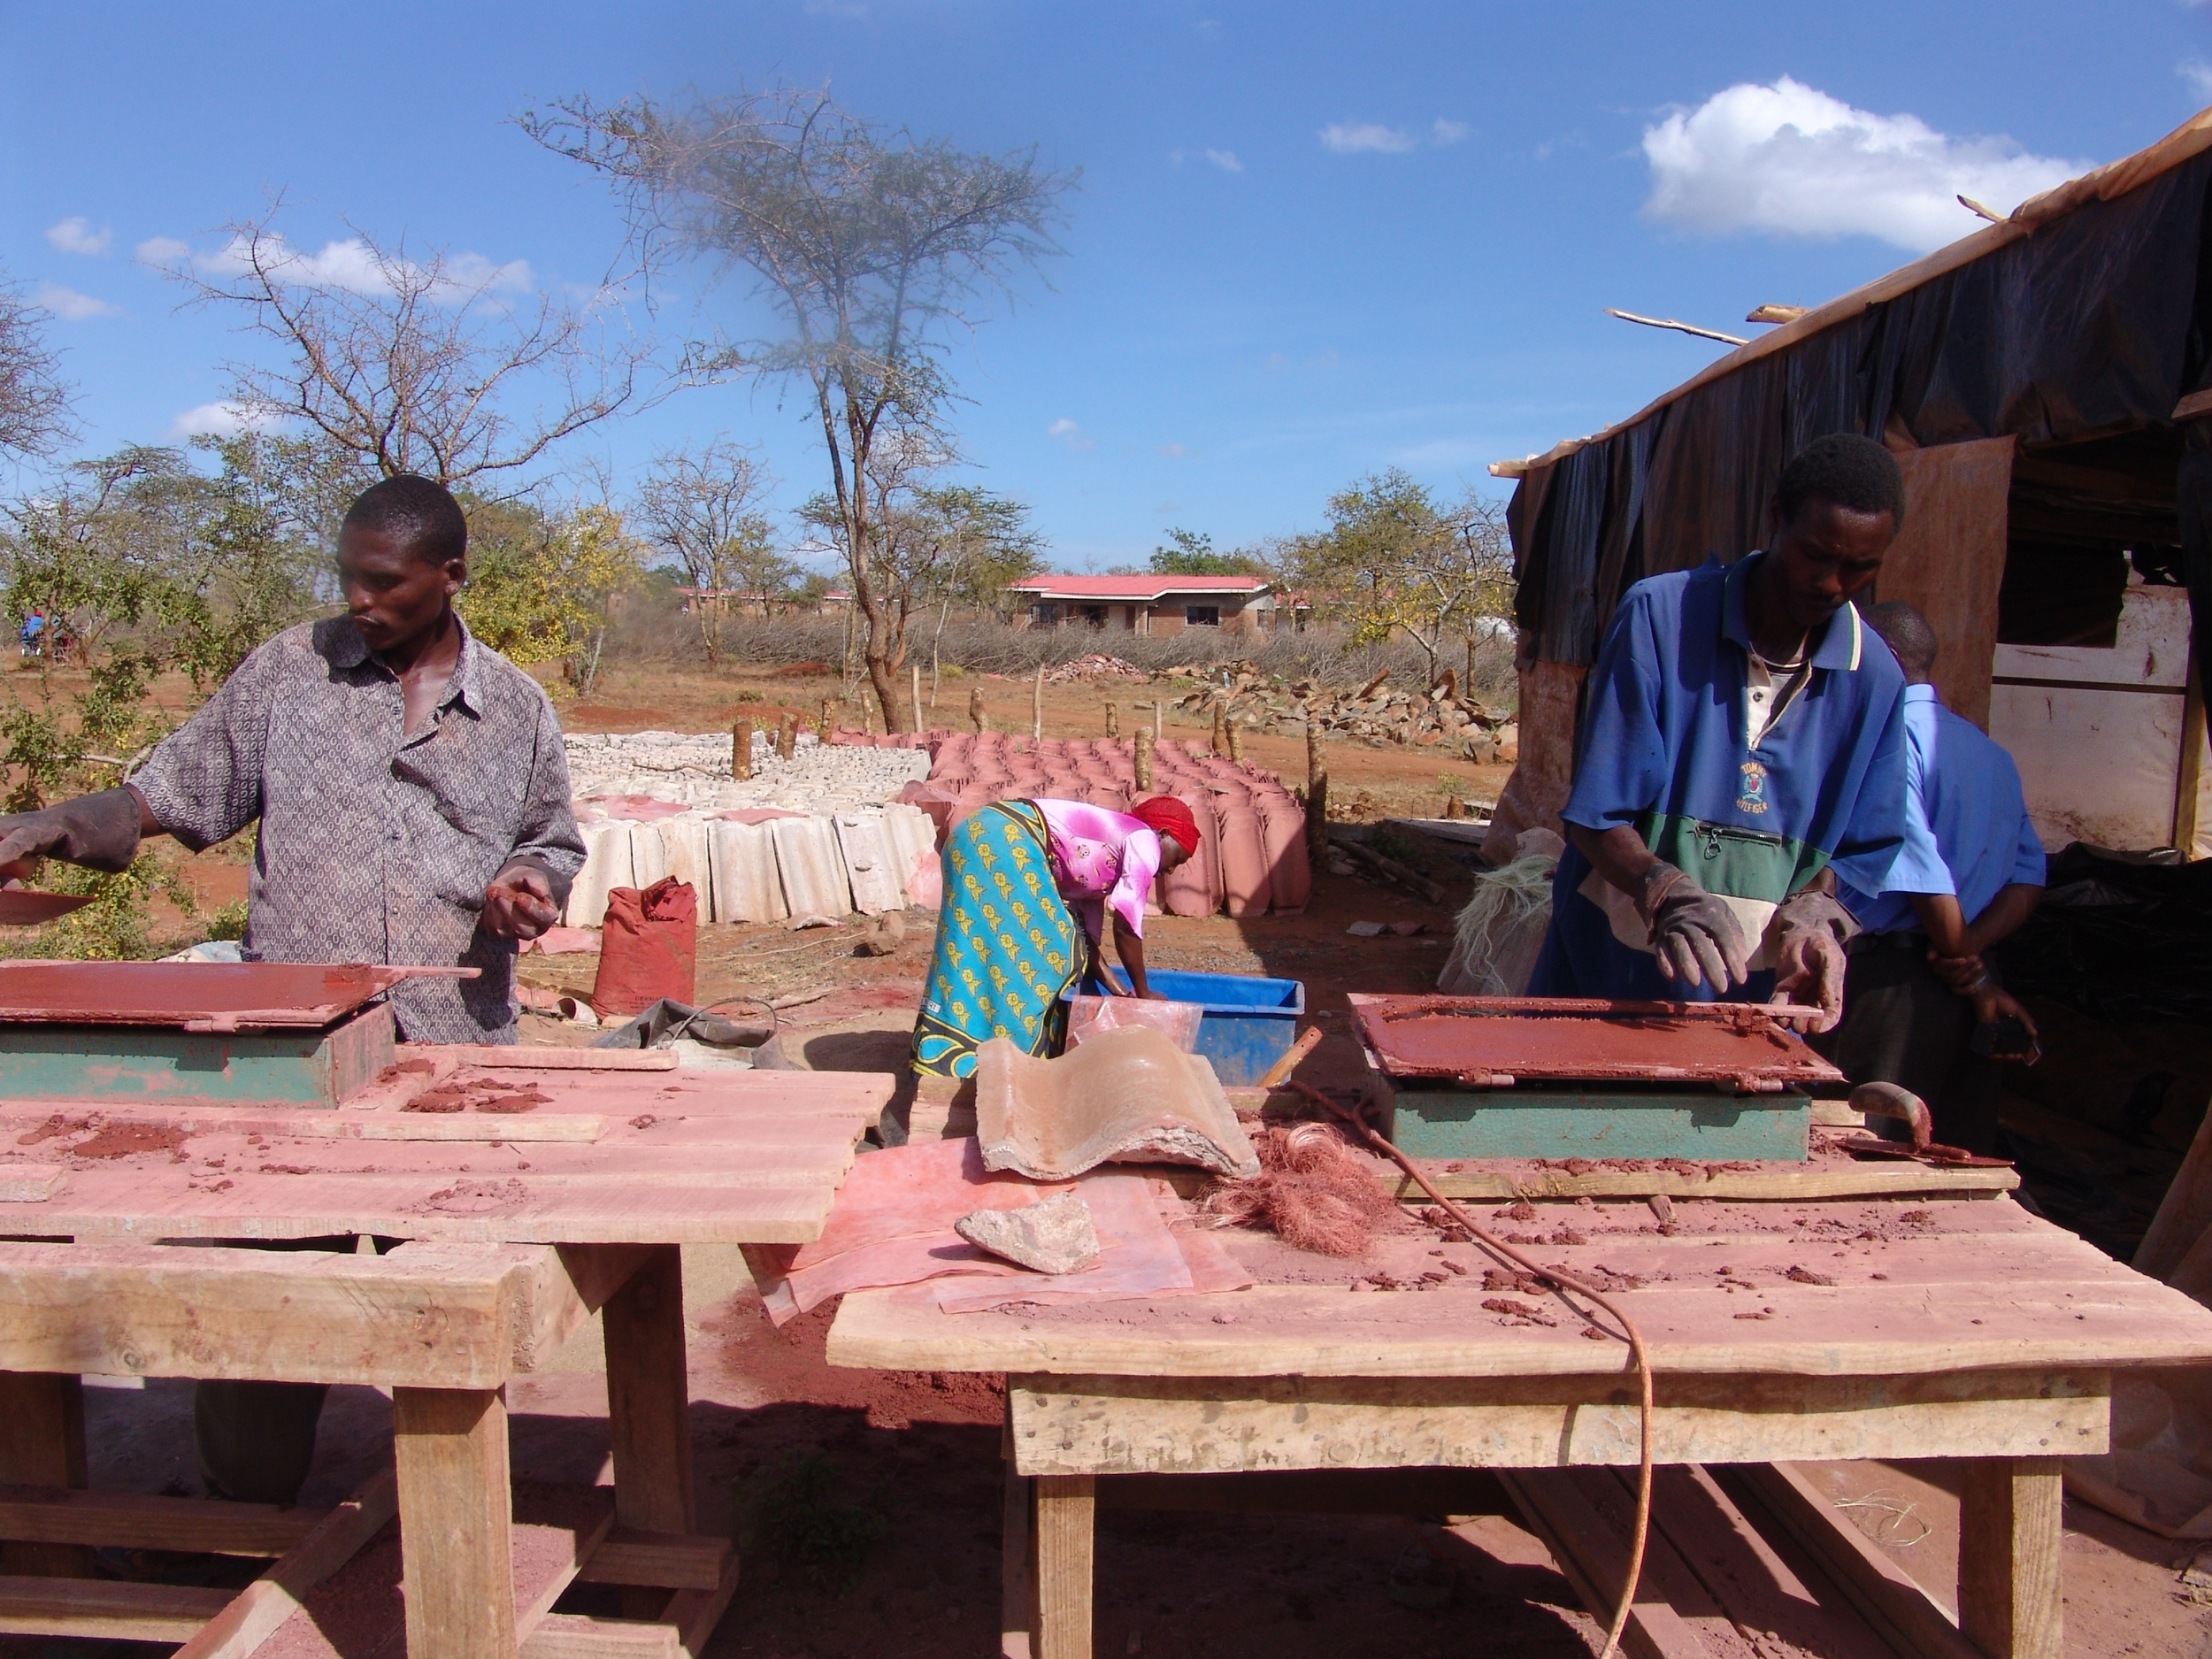 Construction workers learn to make clay roofing tiles at Nyumbani Village in Kenya